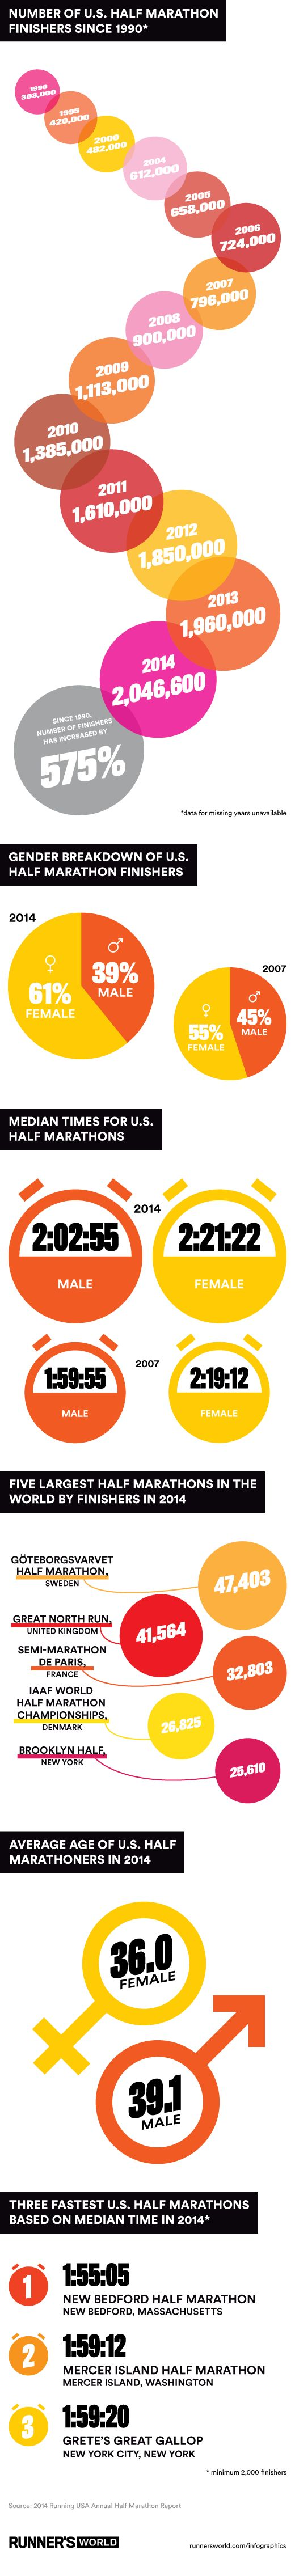 There were more than two million finishers of half marathons in the U.S. in 2014—the most in history, according toRunning USA's Annual Half Marathon Report. That makes the 13.1-mile distance the fastest growingin the sport, and the second most popular behind the 5K, which had more than eightmillion finishers last year. Here's how the half has changed over the past 25 years.